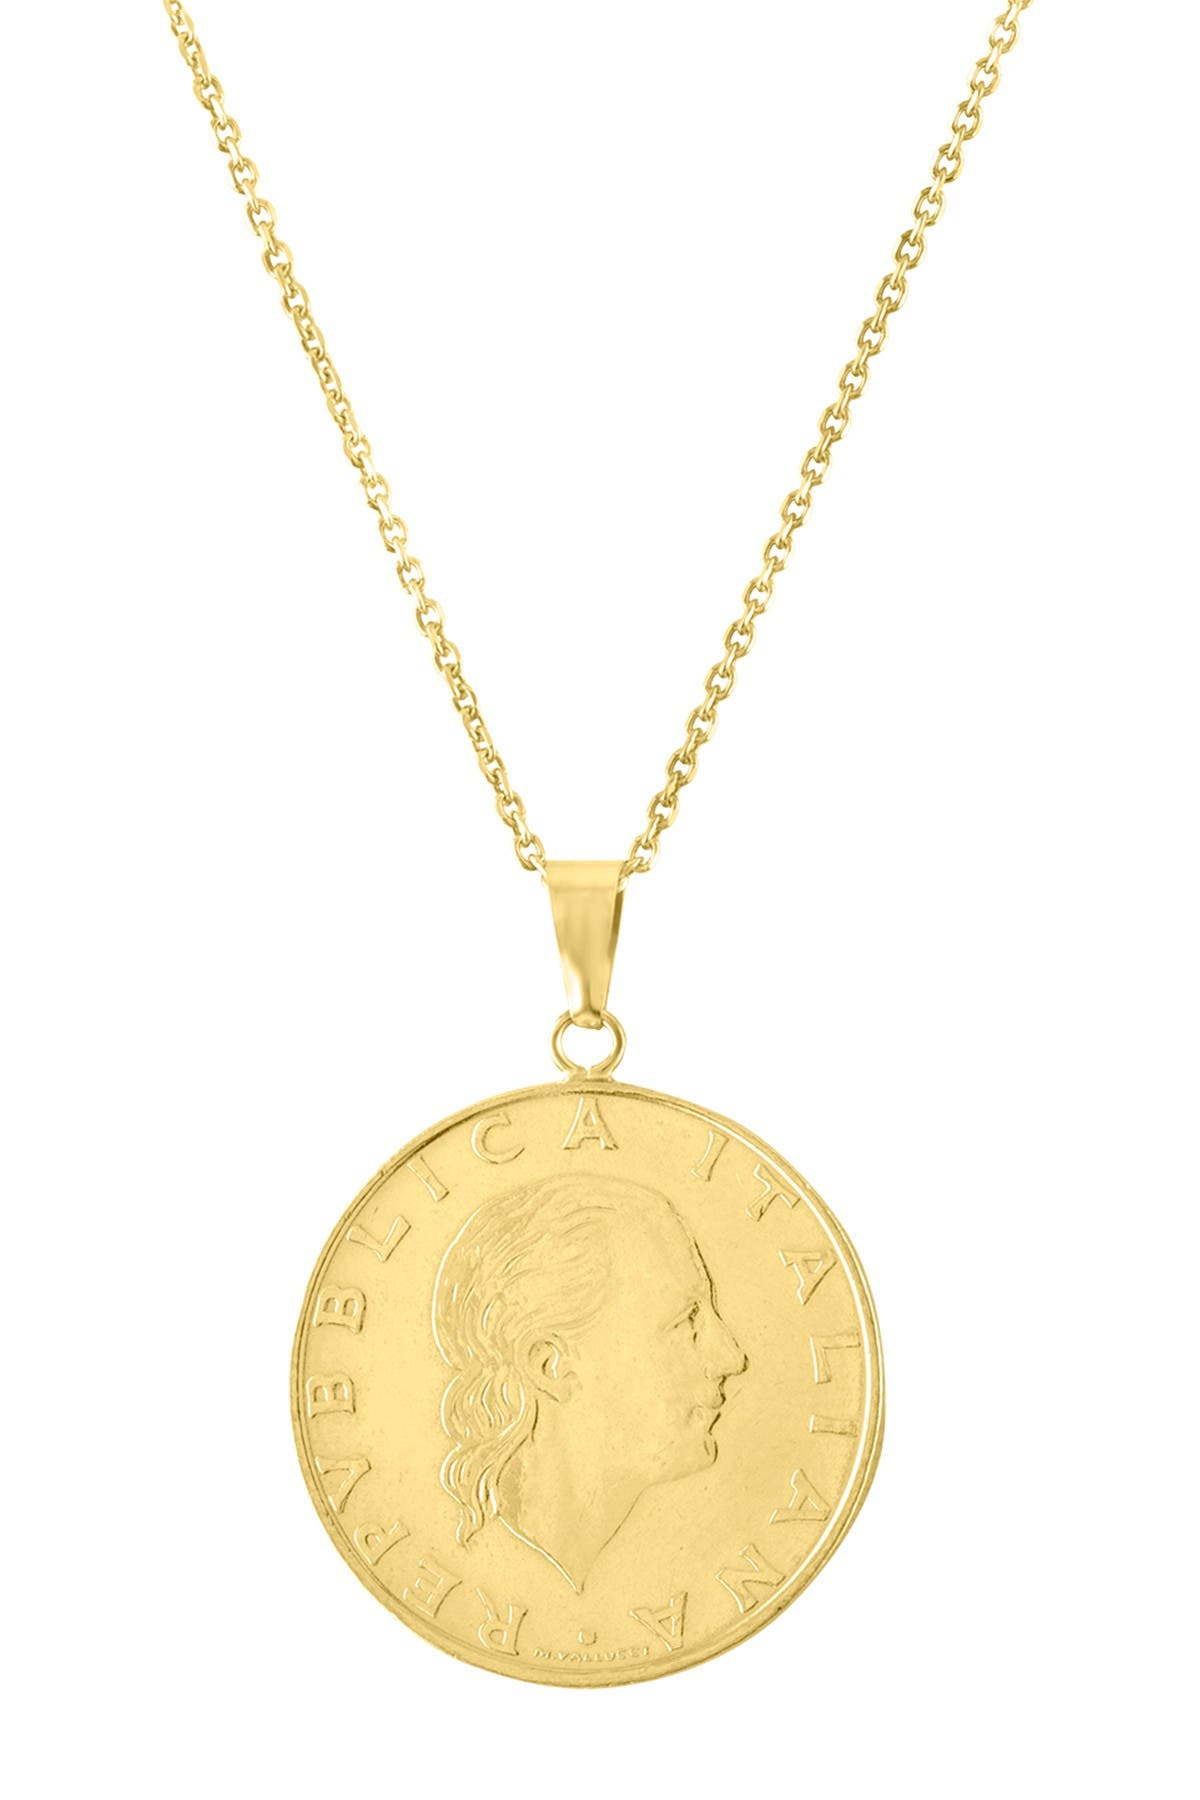 Image of Sphera Milano 14K Yellow Gold Authentic Coin Pendant Necklace